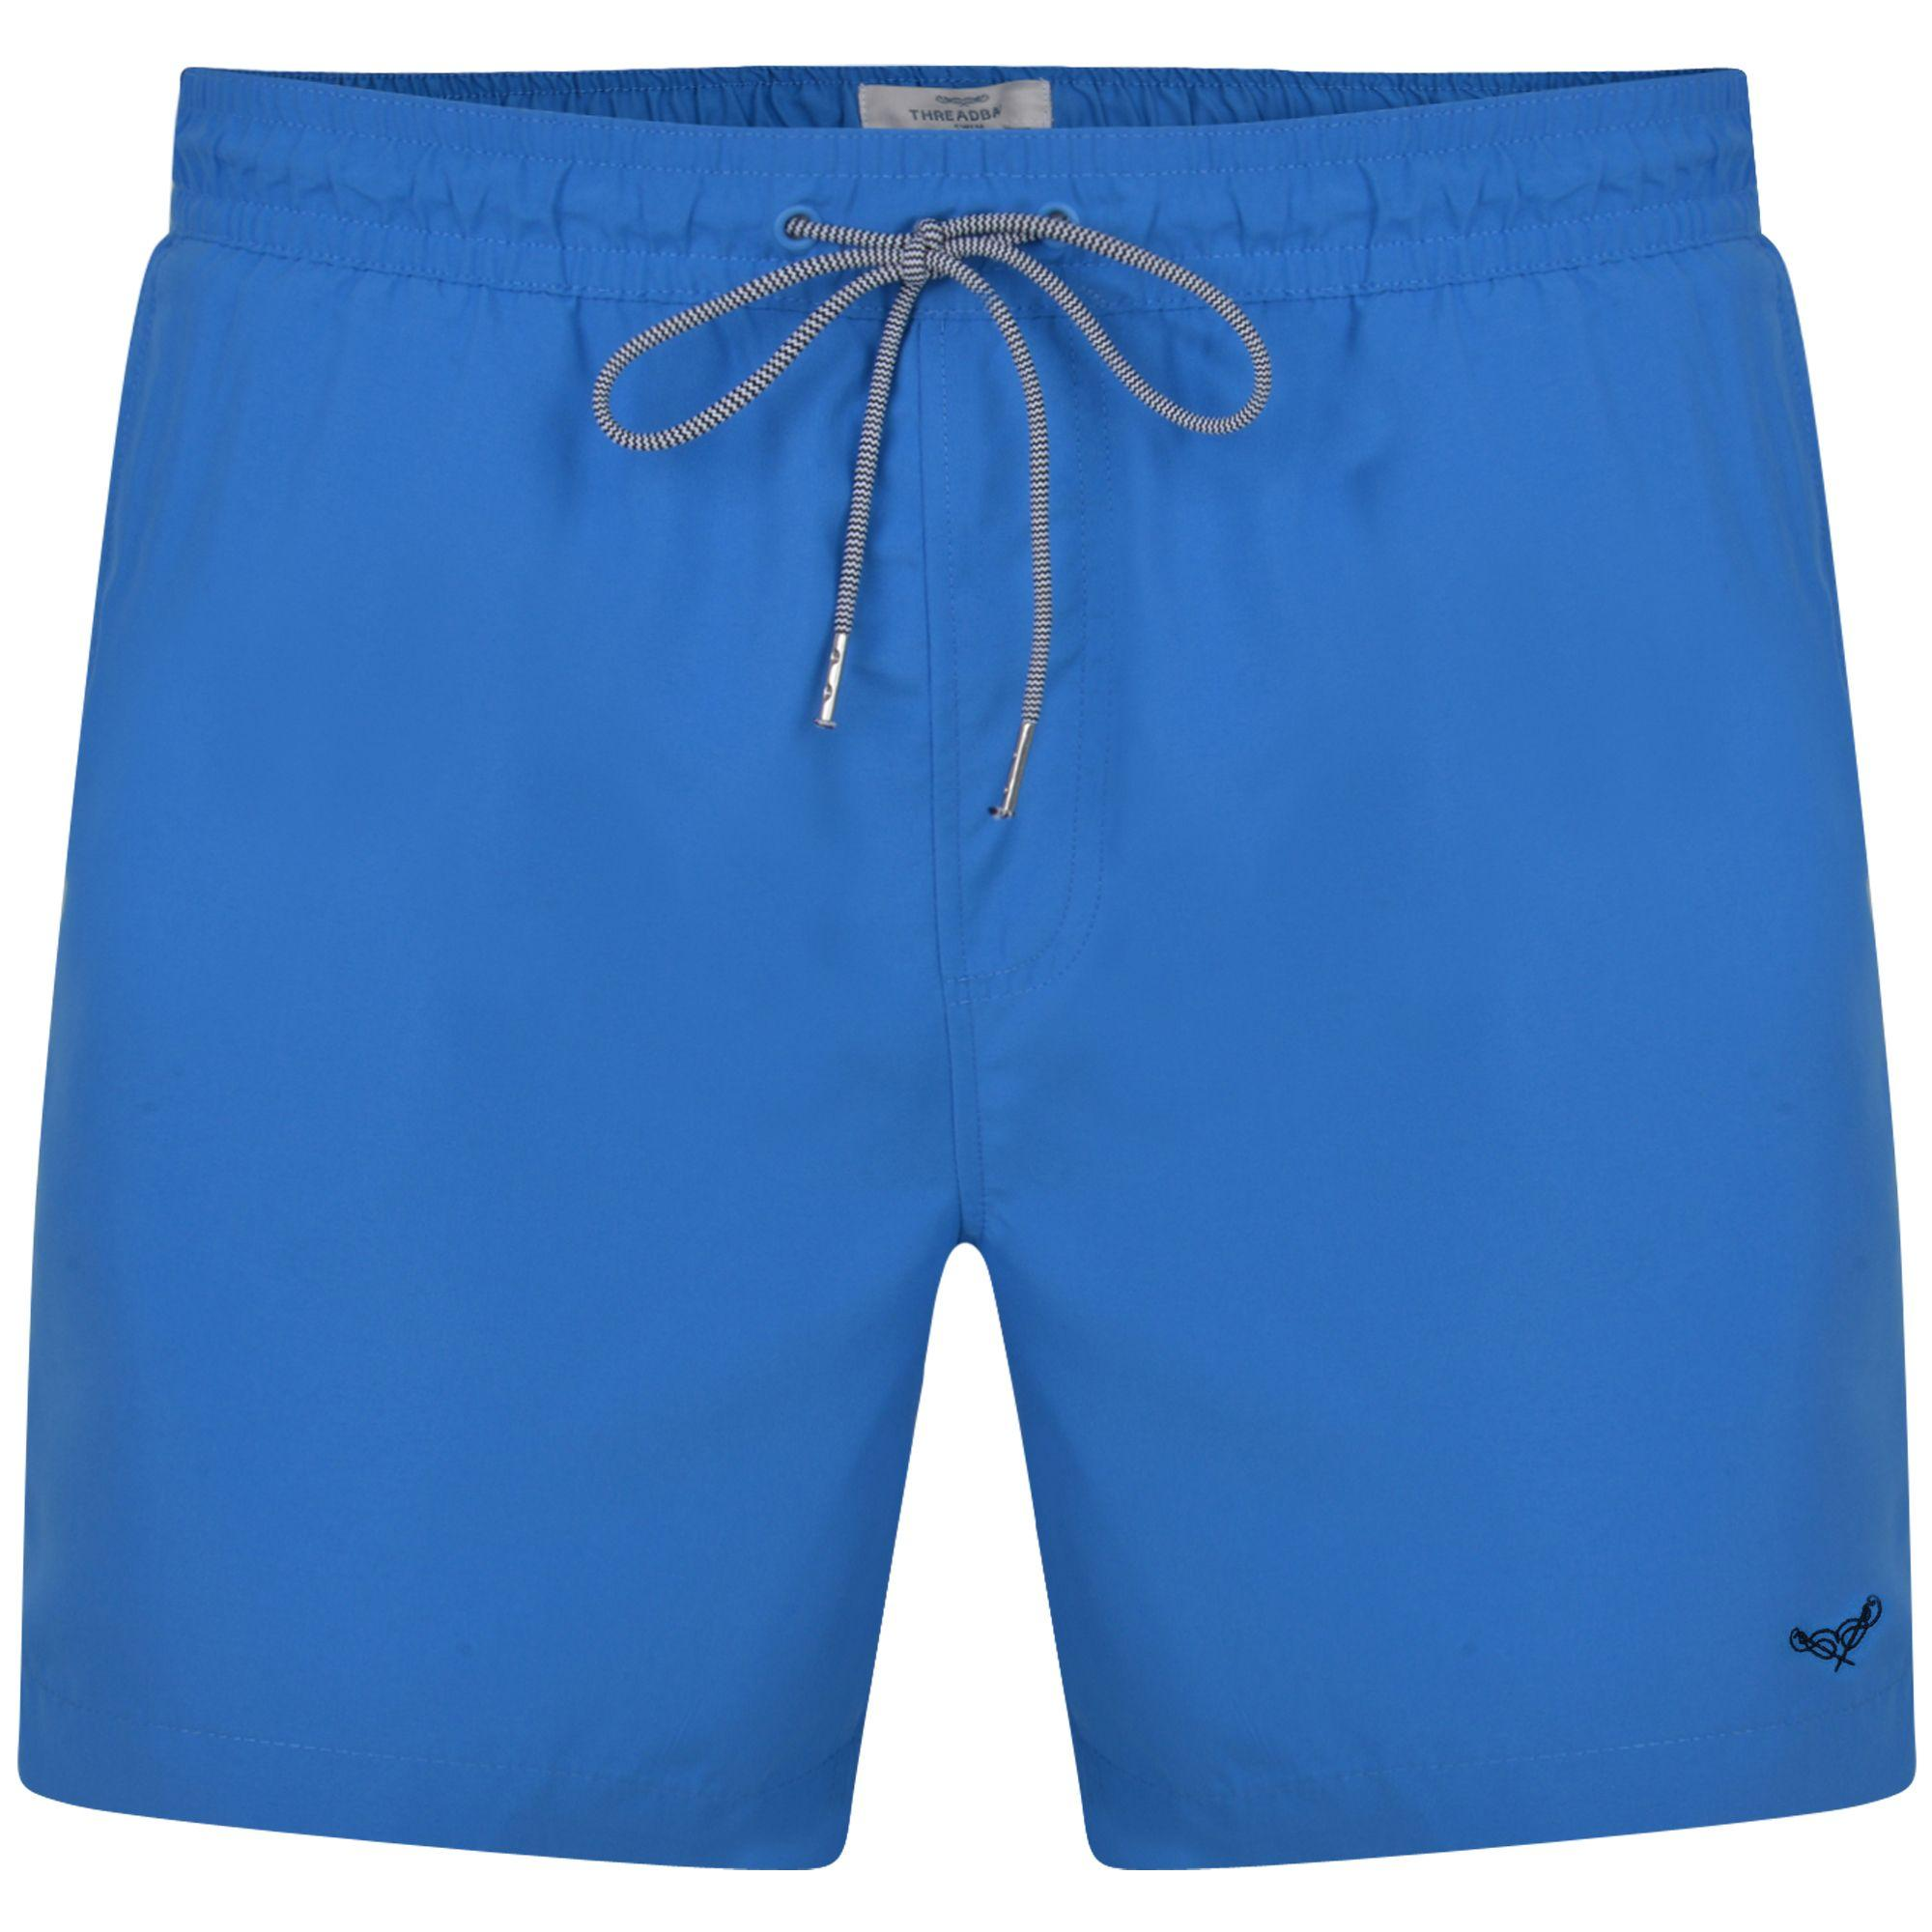 0c91af6549 ... Threadbare - 2 Pack Red And Blue 'barwhit' Swim Shorts for Men - Lyst.  Visit Debenhams. Tap to visit site